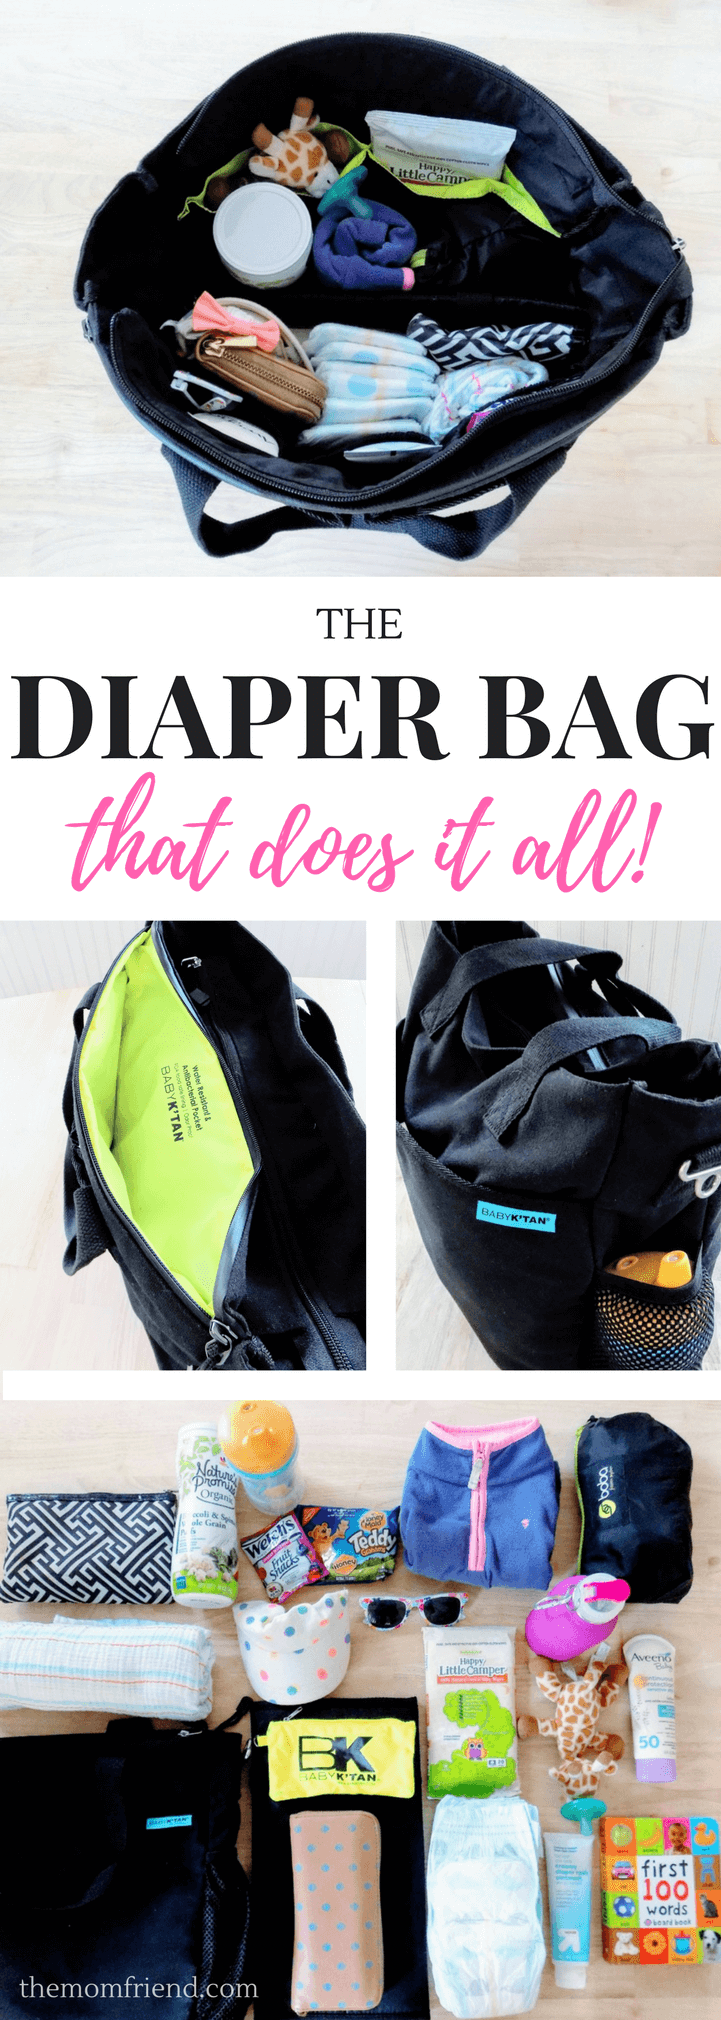 A review of the innovative Baby K'Tan Diaper Bag- see why it is great for cloth diapering and moms on the go! | best diaper bags | baby gear | baby shower gifts | diaper bag with pockets | diaper bag essentials, diaper bag organization | The Mom Friend